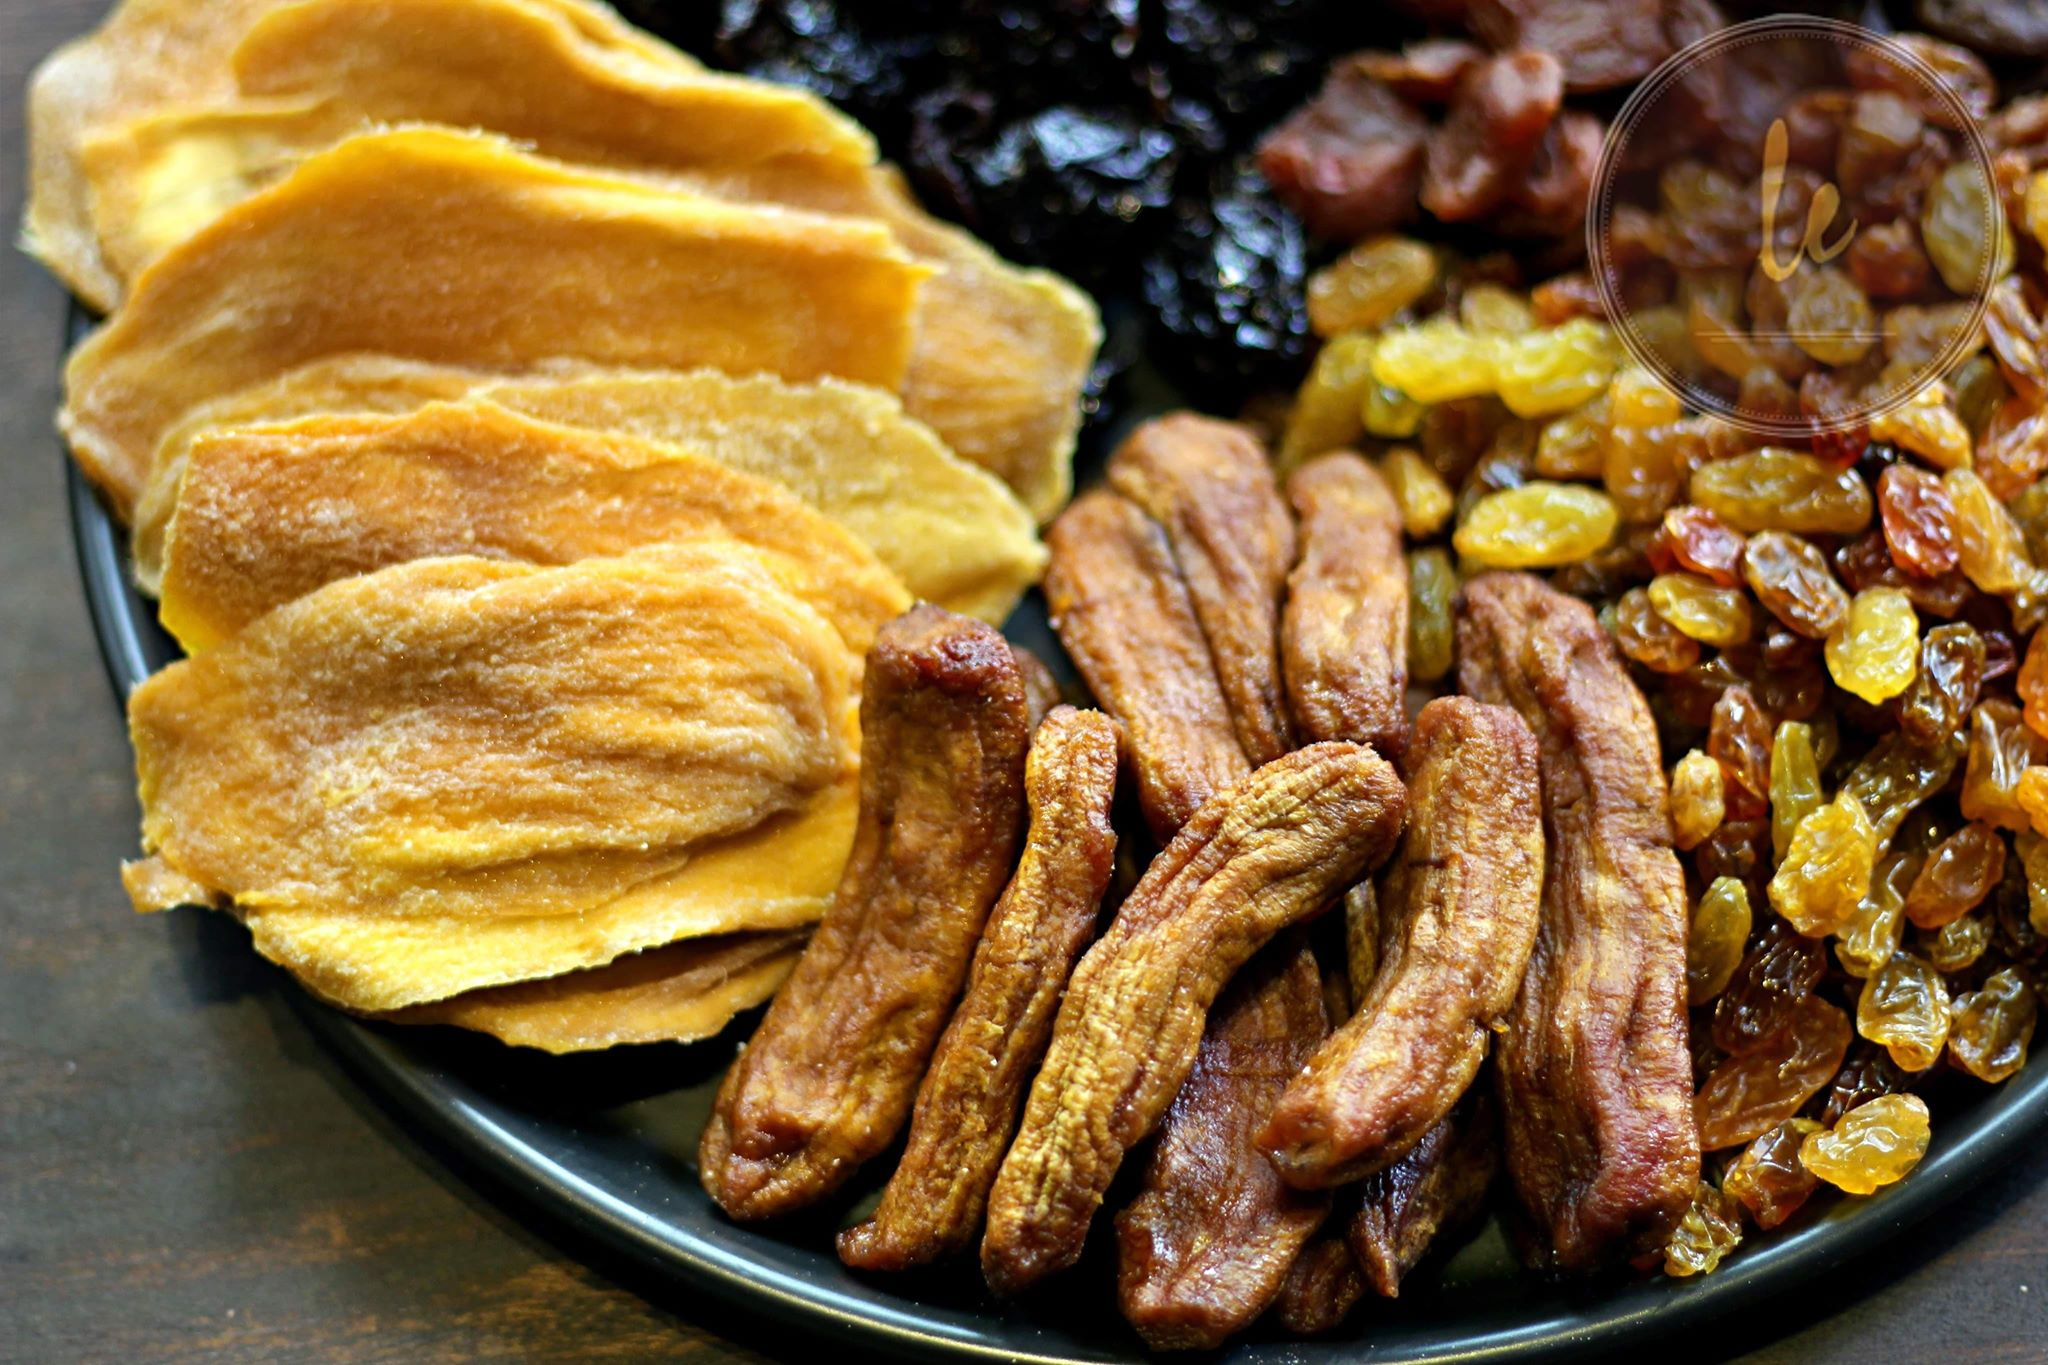 Mixed dried fruits (5 kinds of fruits)